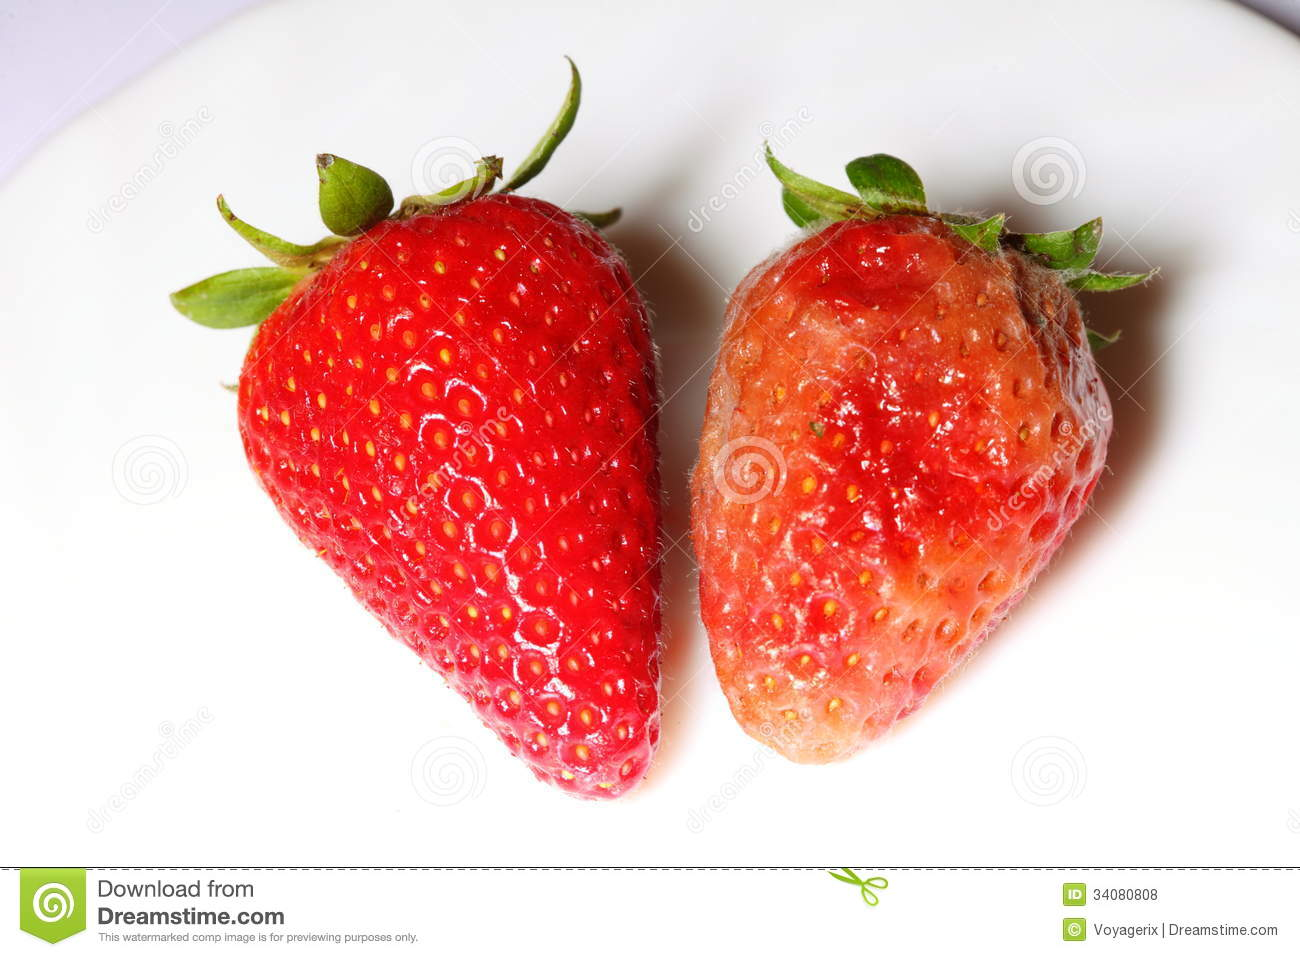 Rotten Strawberries Healthy and rotten spoiled bad